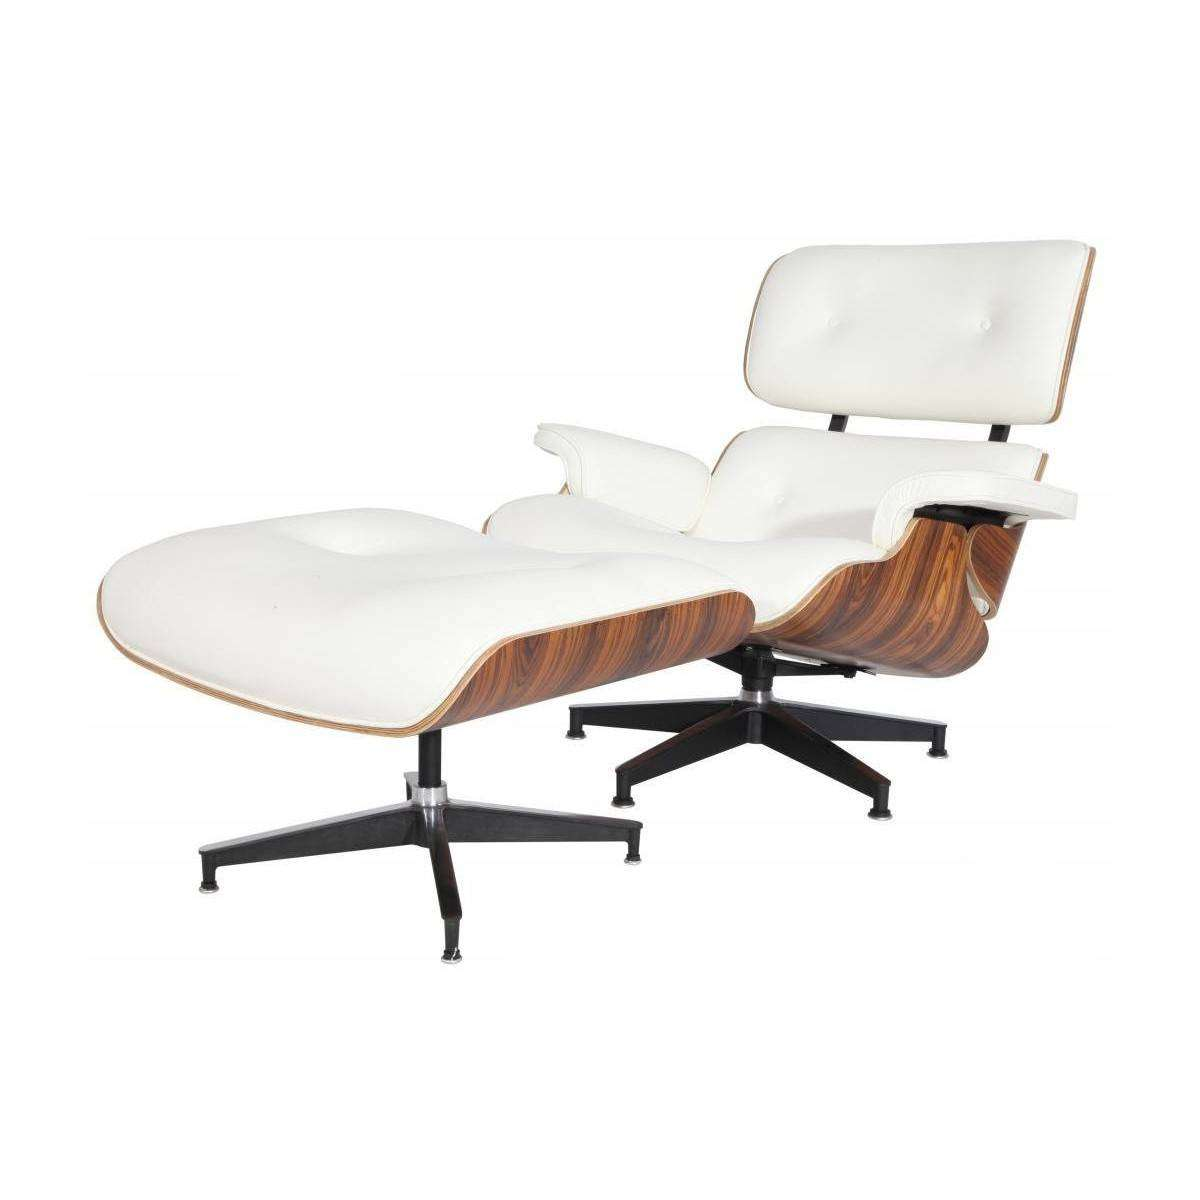 Eames Stuhl Nachbau Eames Lounge Chair Kopia Eames Lounge Chair Eames Lounge